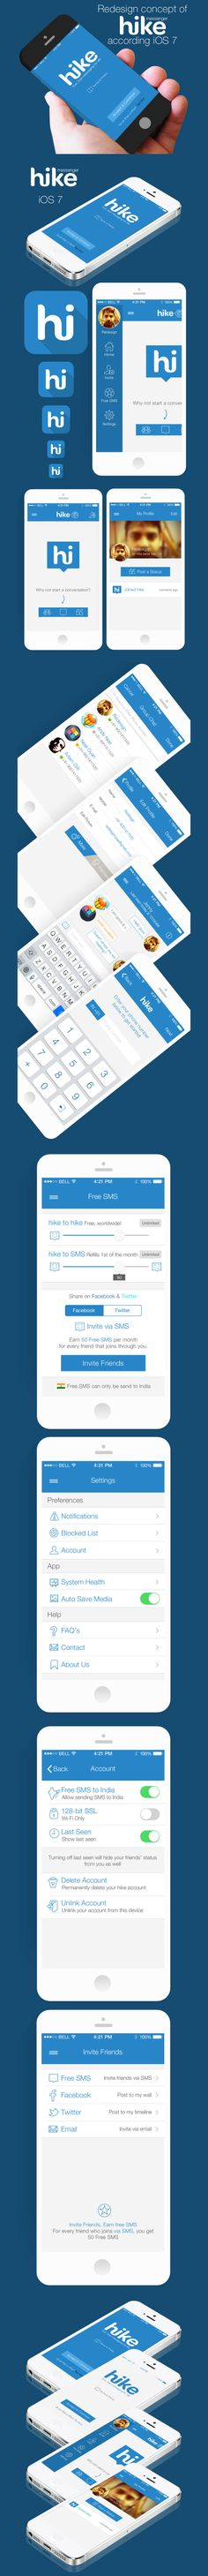 Redesign-concept-of-hike-messenger